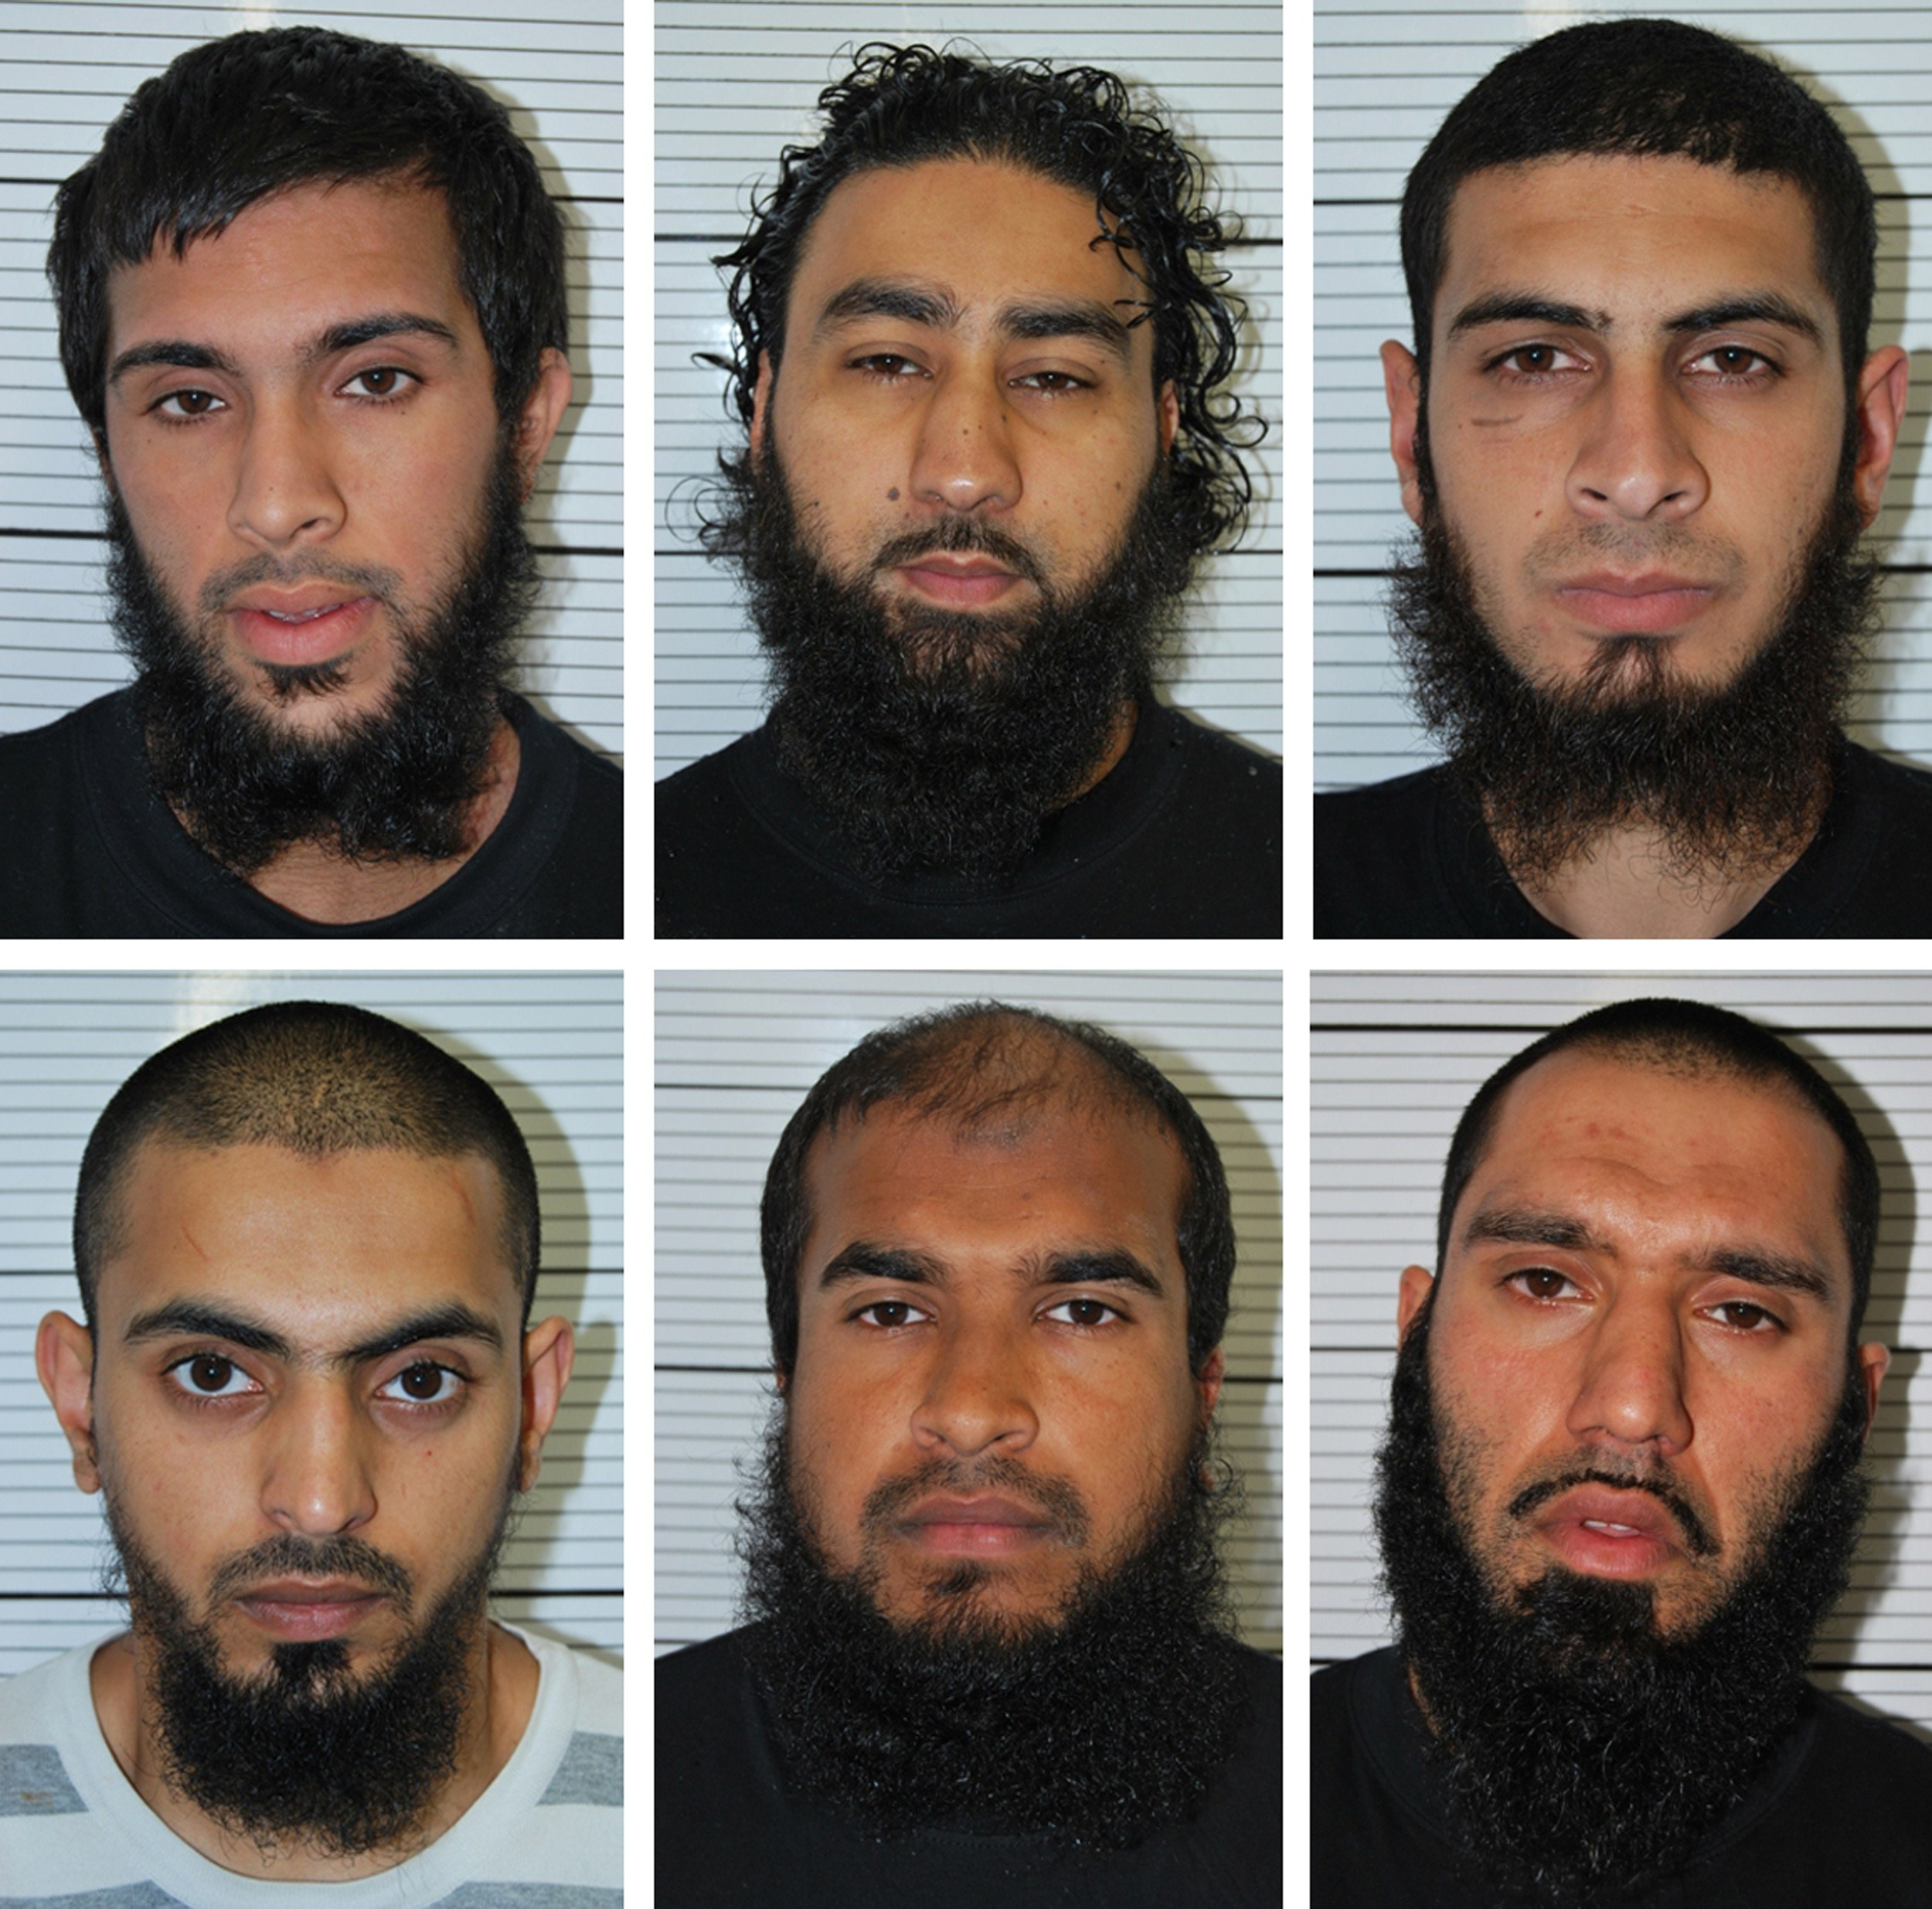 A combination of handouts released by West Midlands Police on April 30, 2013 shows the undated custody photographs of six men (top row L-R) Zohaib Ahmed, Omar Khan, Mohammed Saud (bottom row L-R) Mohammed Hasseen, Jewel Uddin and Anzal Hussain, who all admitted in court on April 30, 2013 to planning to attack a far-right rally in England with guns, swords and a nail bomb, in a plot that only failed because they turned up late. (AFP Photo)